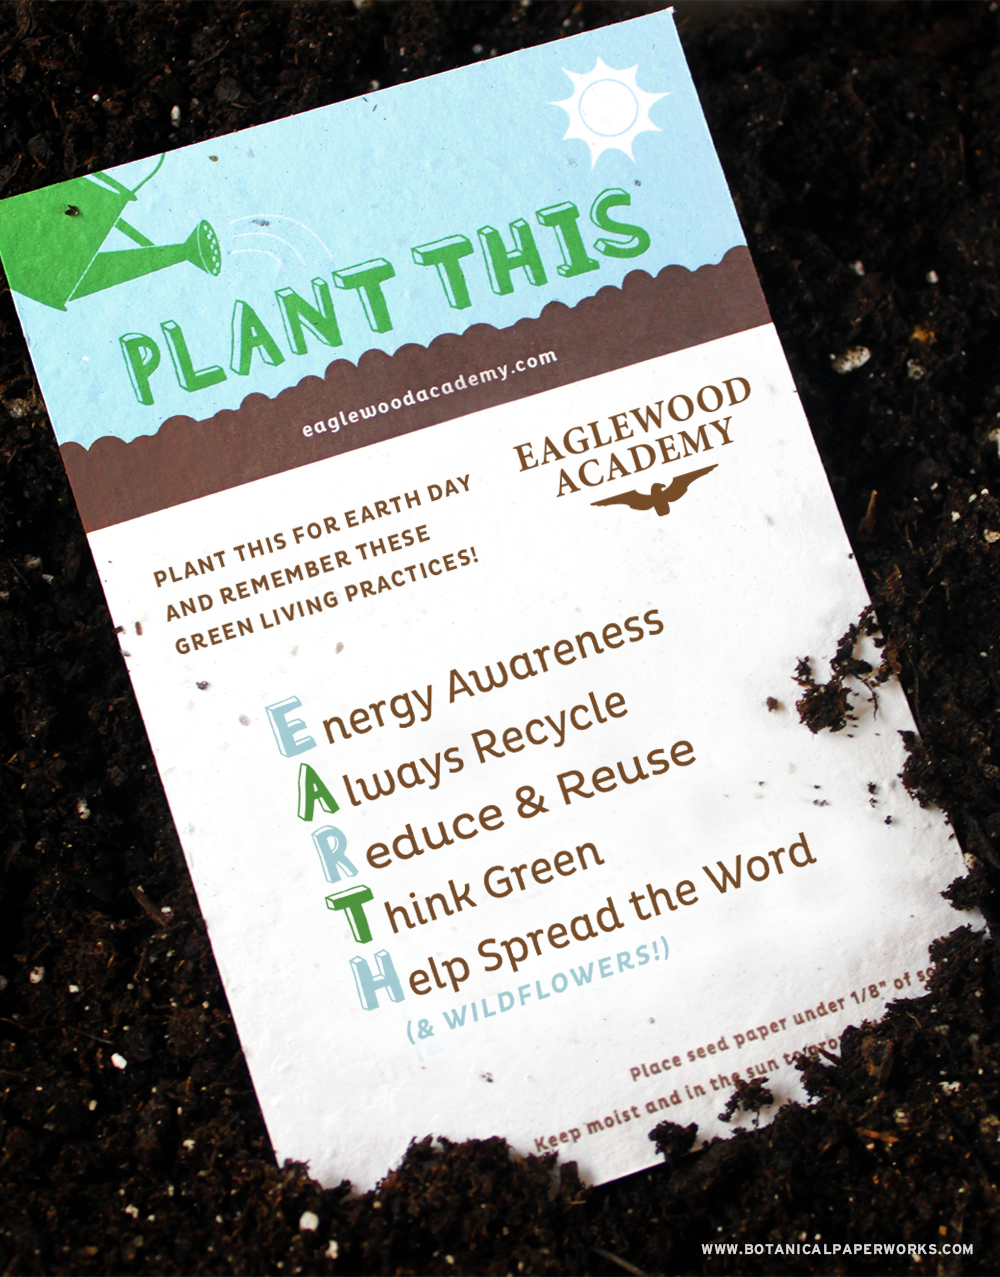 Get your Earth Day message our there and take a look at this fun idea shown on 3 different seed paper promotional products